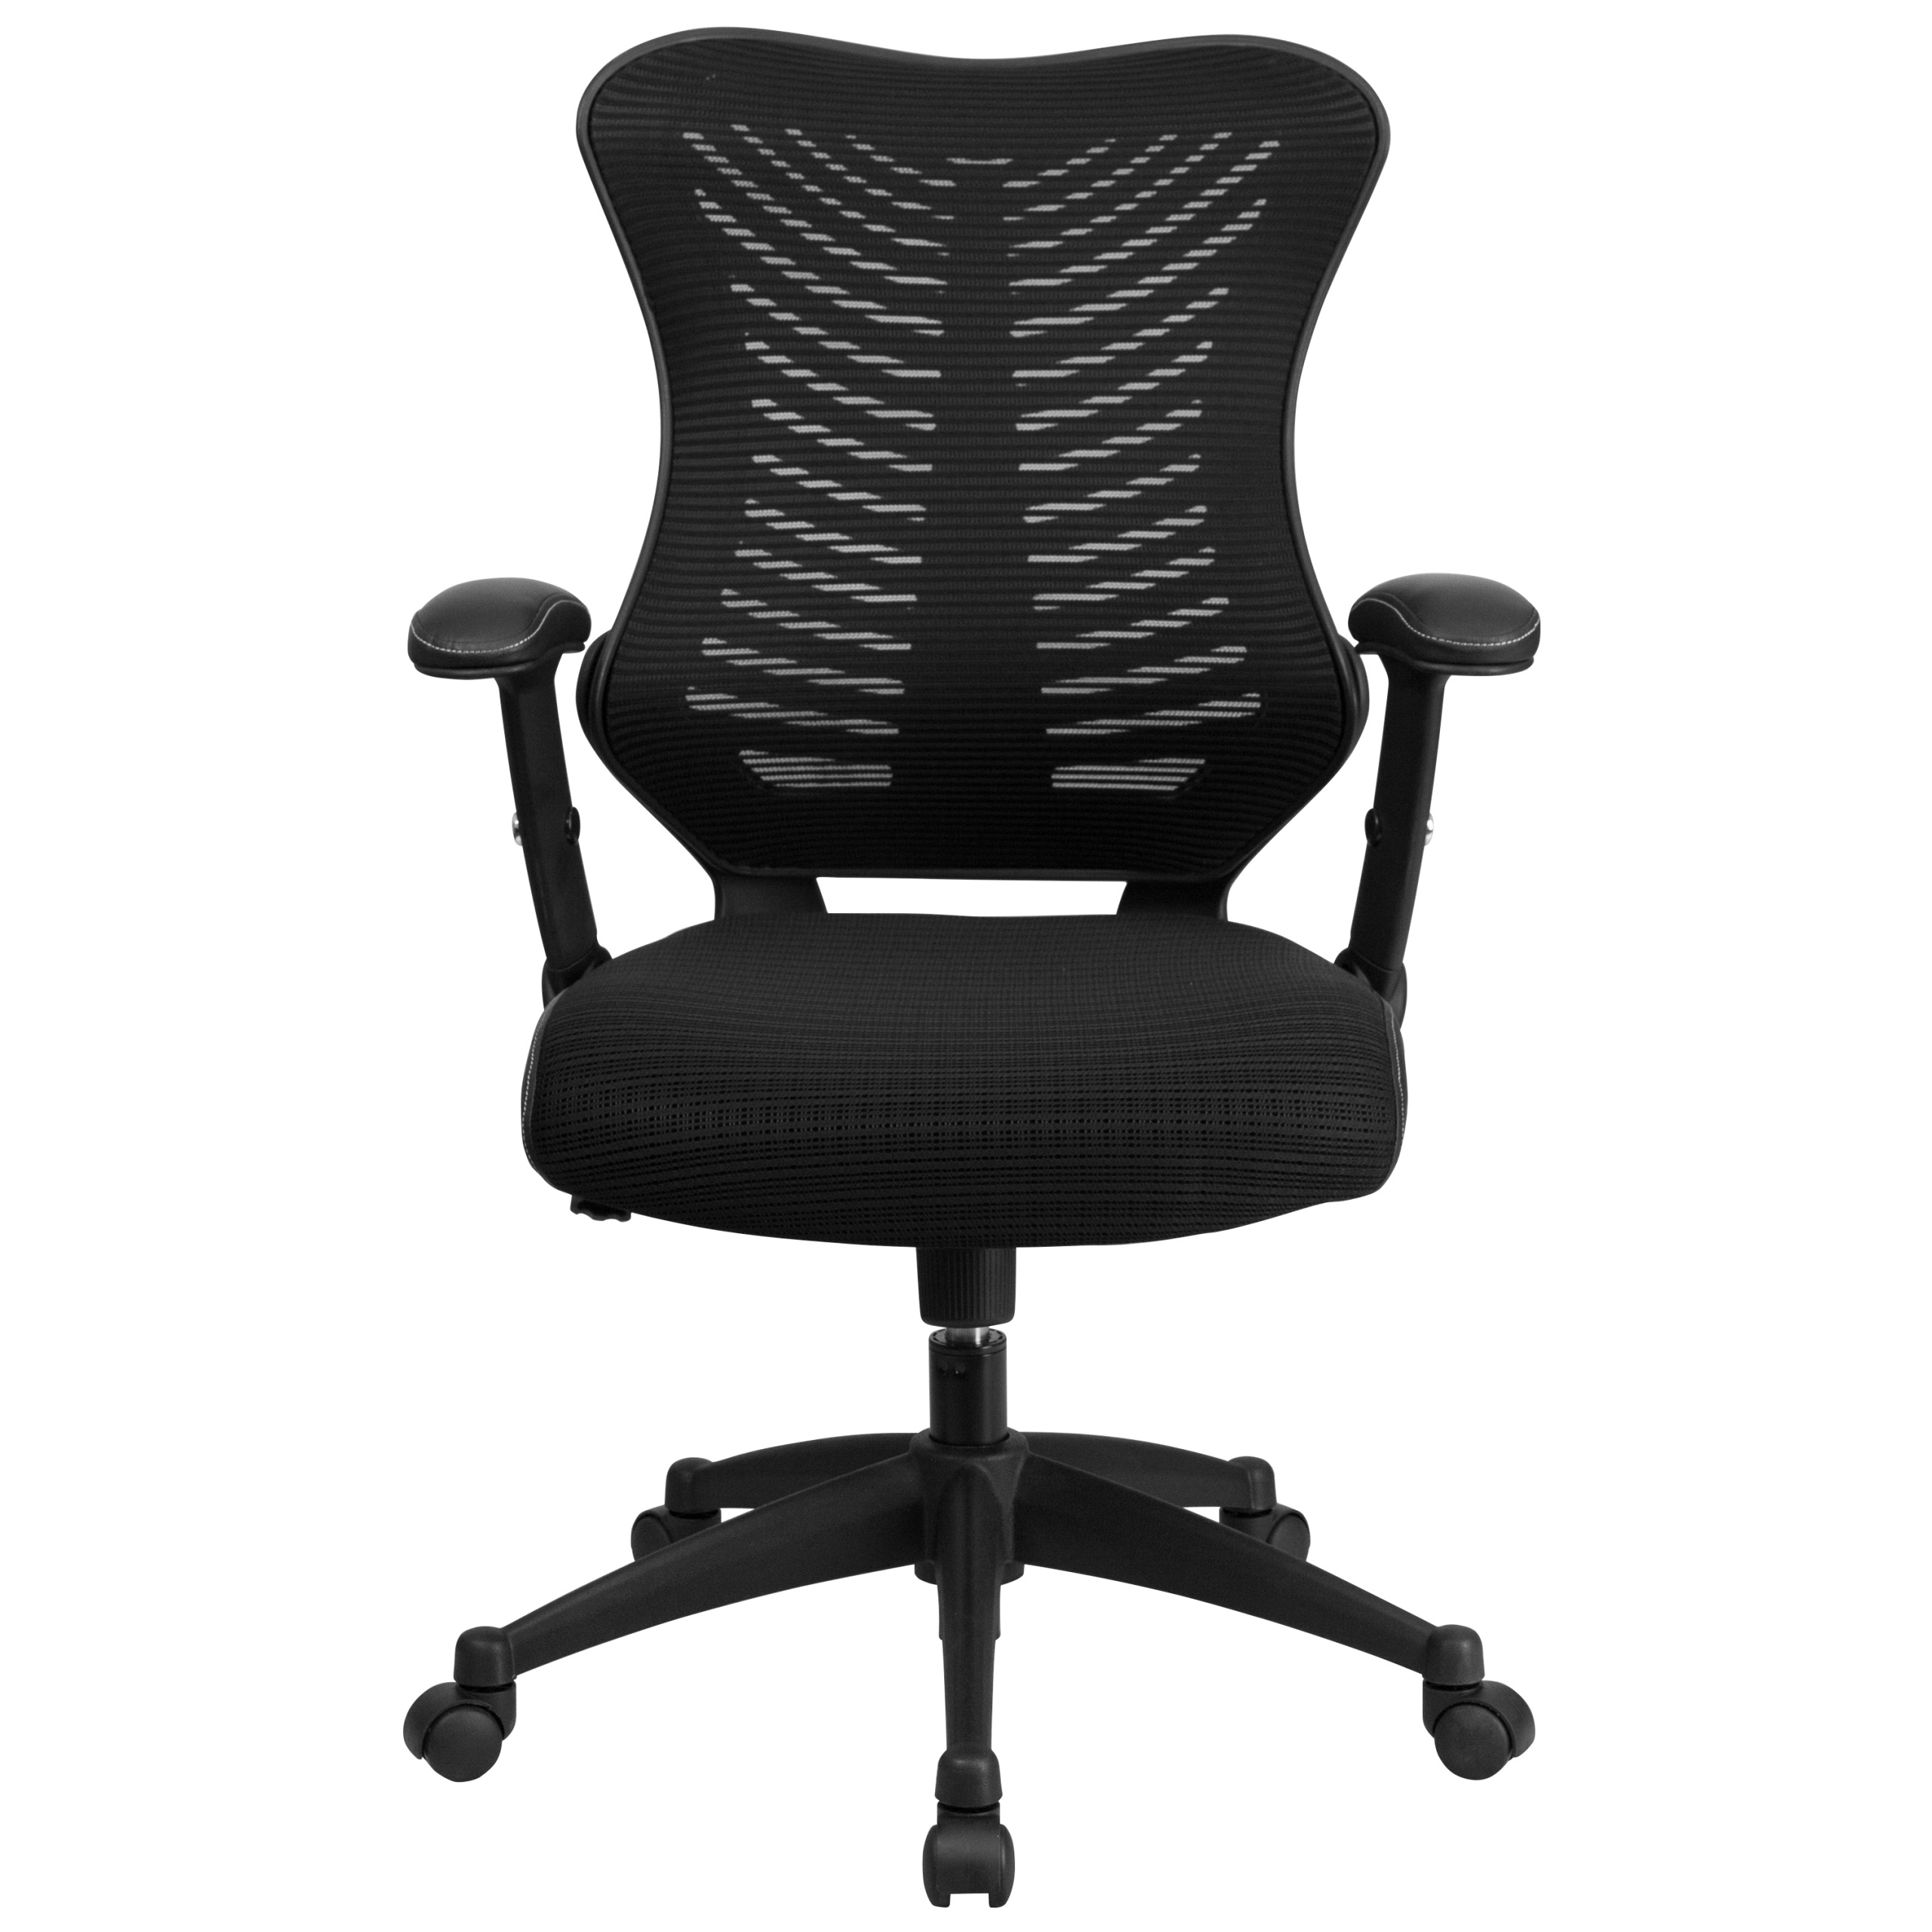 New Web Mesh Back Office Chair from Outlook Offices